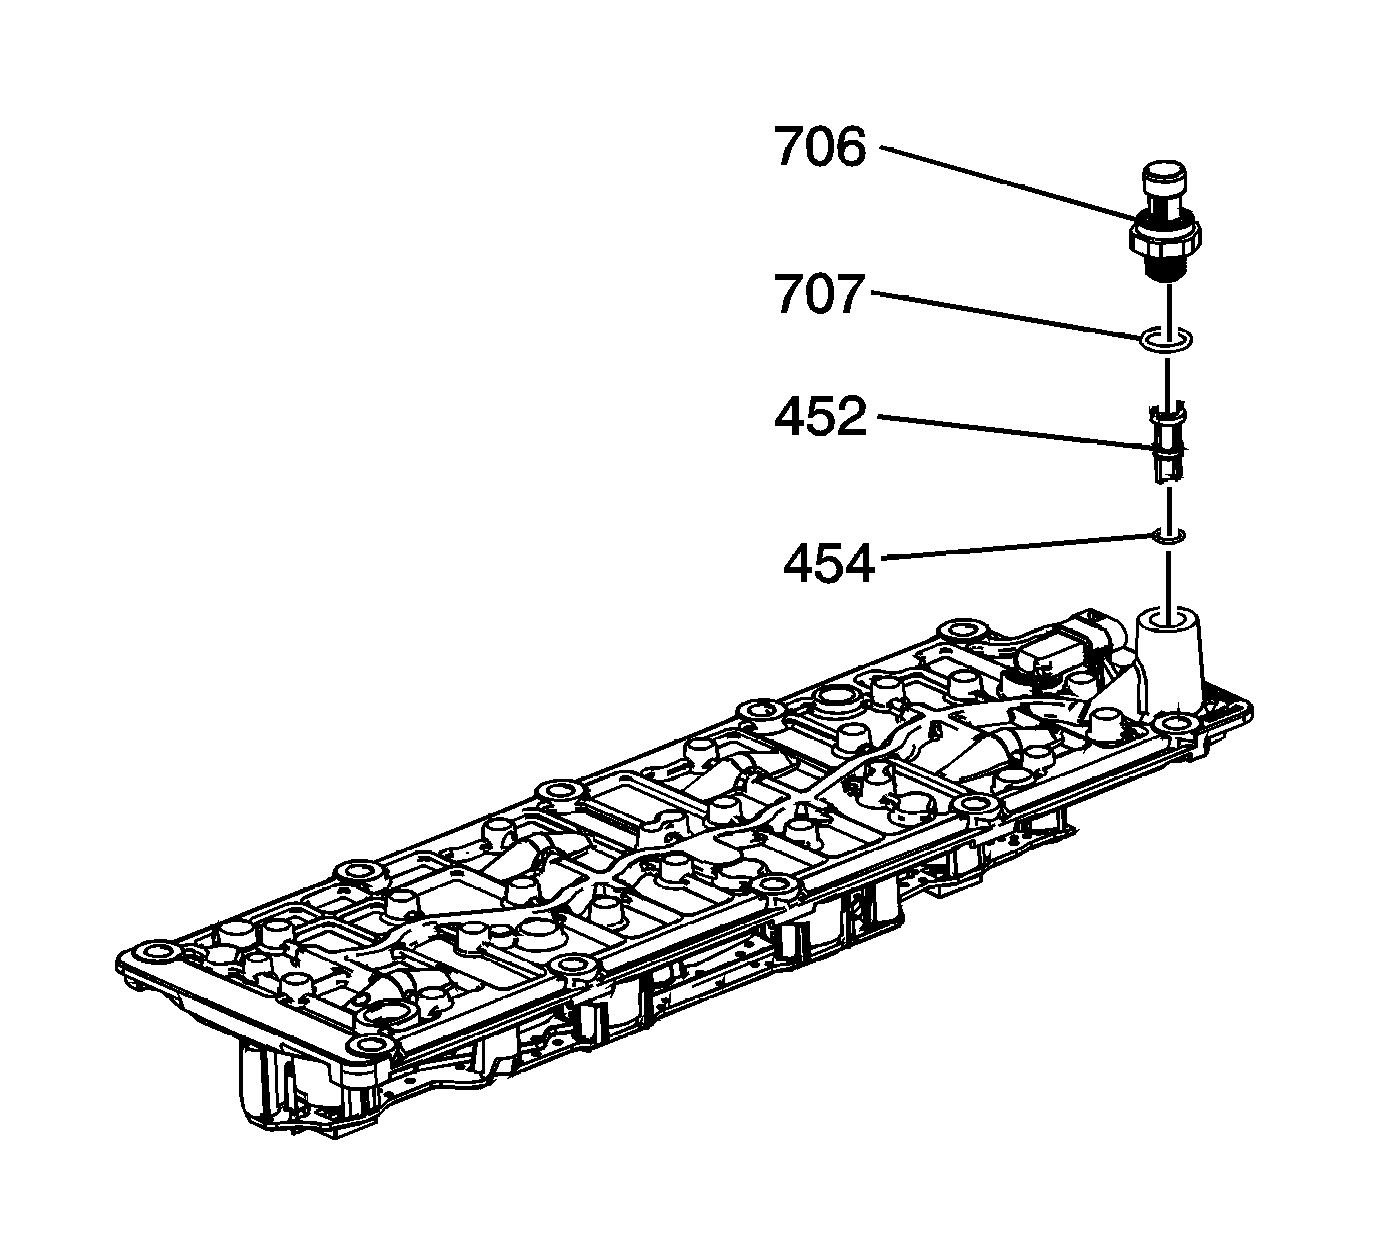 Volvo Catalytic Converter Diagram further 1378140 Headlight Wiring in addition 789169 Fuel Line Leaks Fix Fass likewise RepairGuideContent likewise Np231 Vent Hose Filter 227368. on chevy silverado fuel filter location